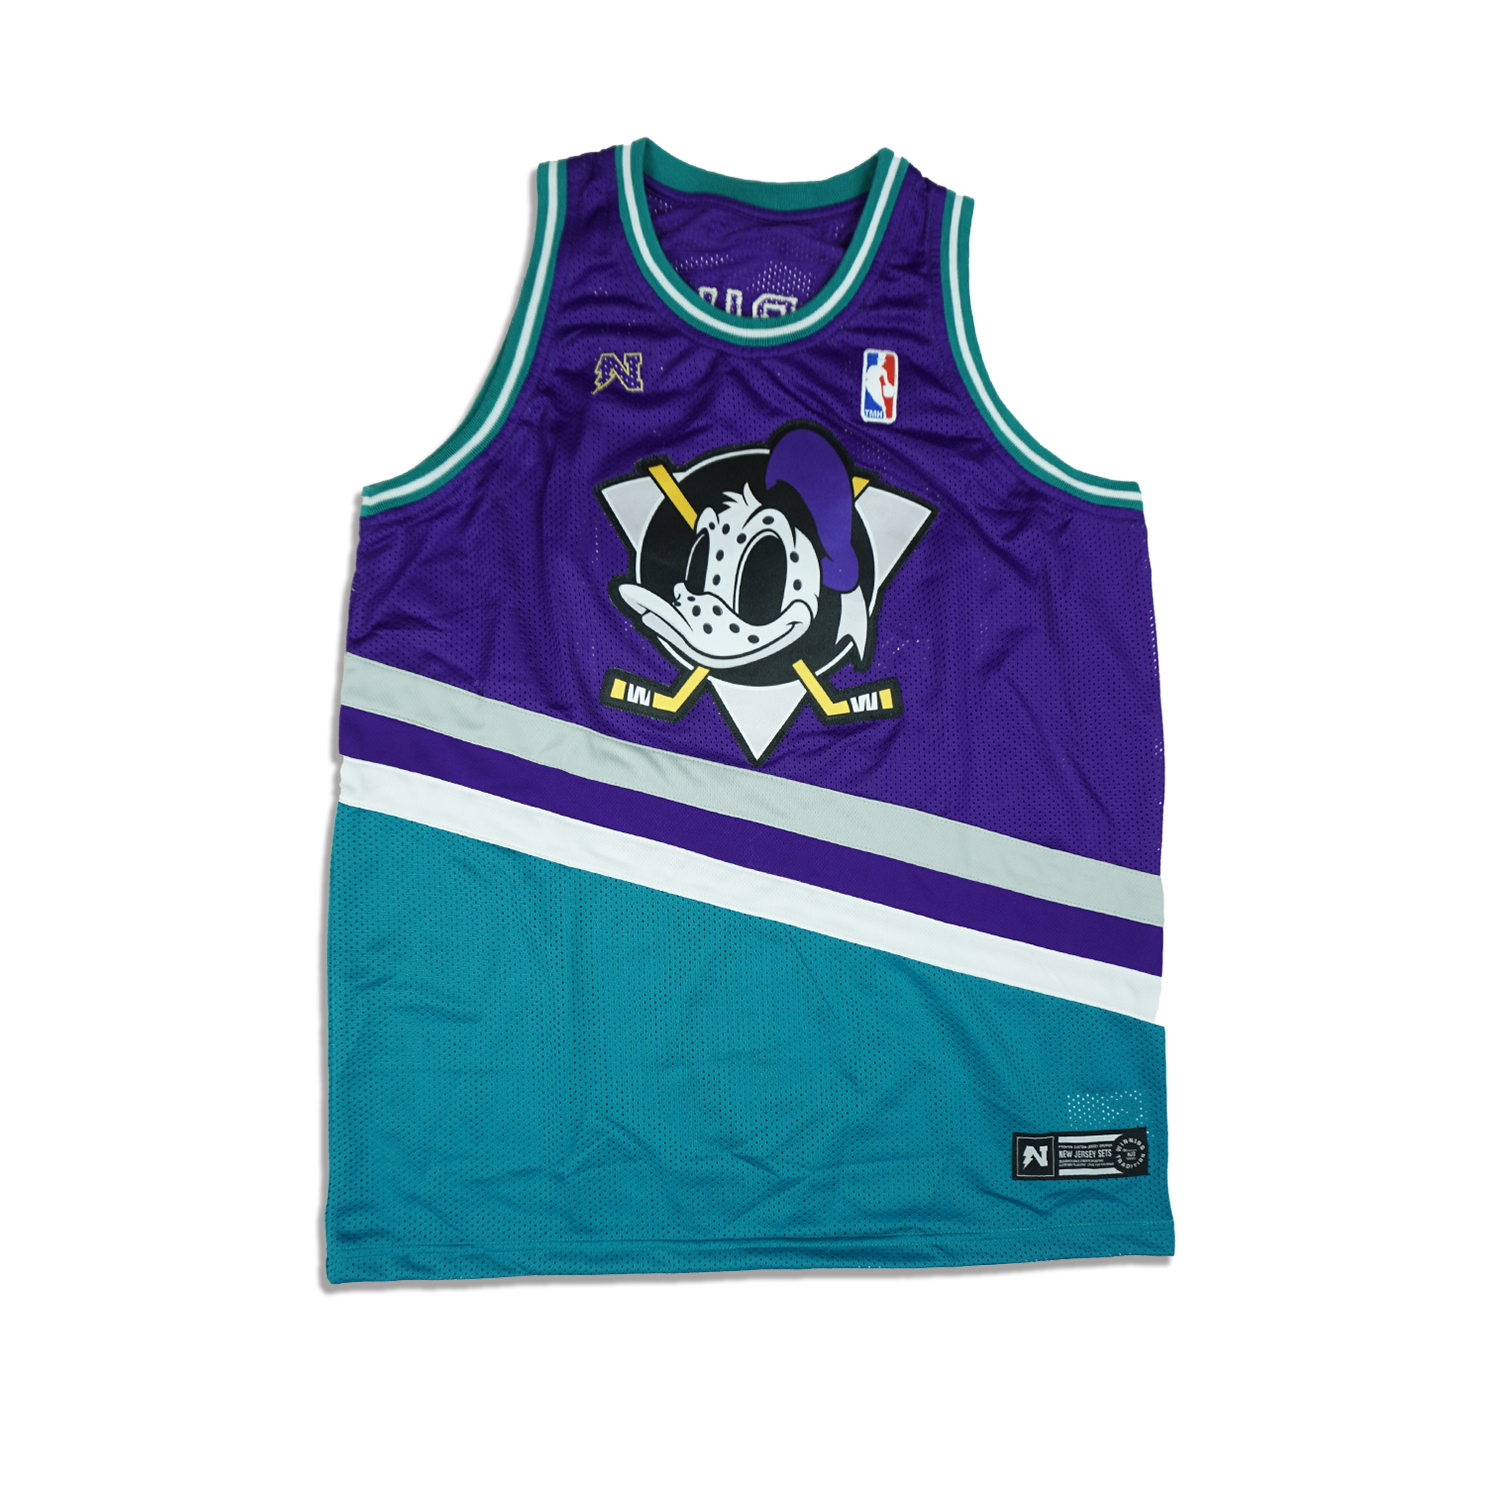 D. Duck  Basketball Jersey - Teal & Purple